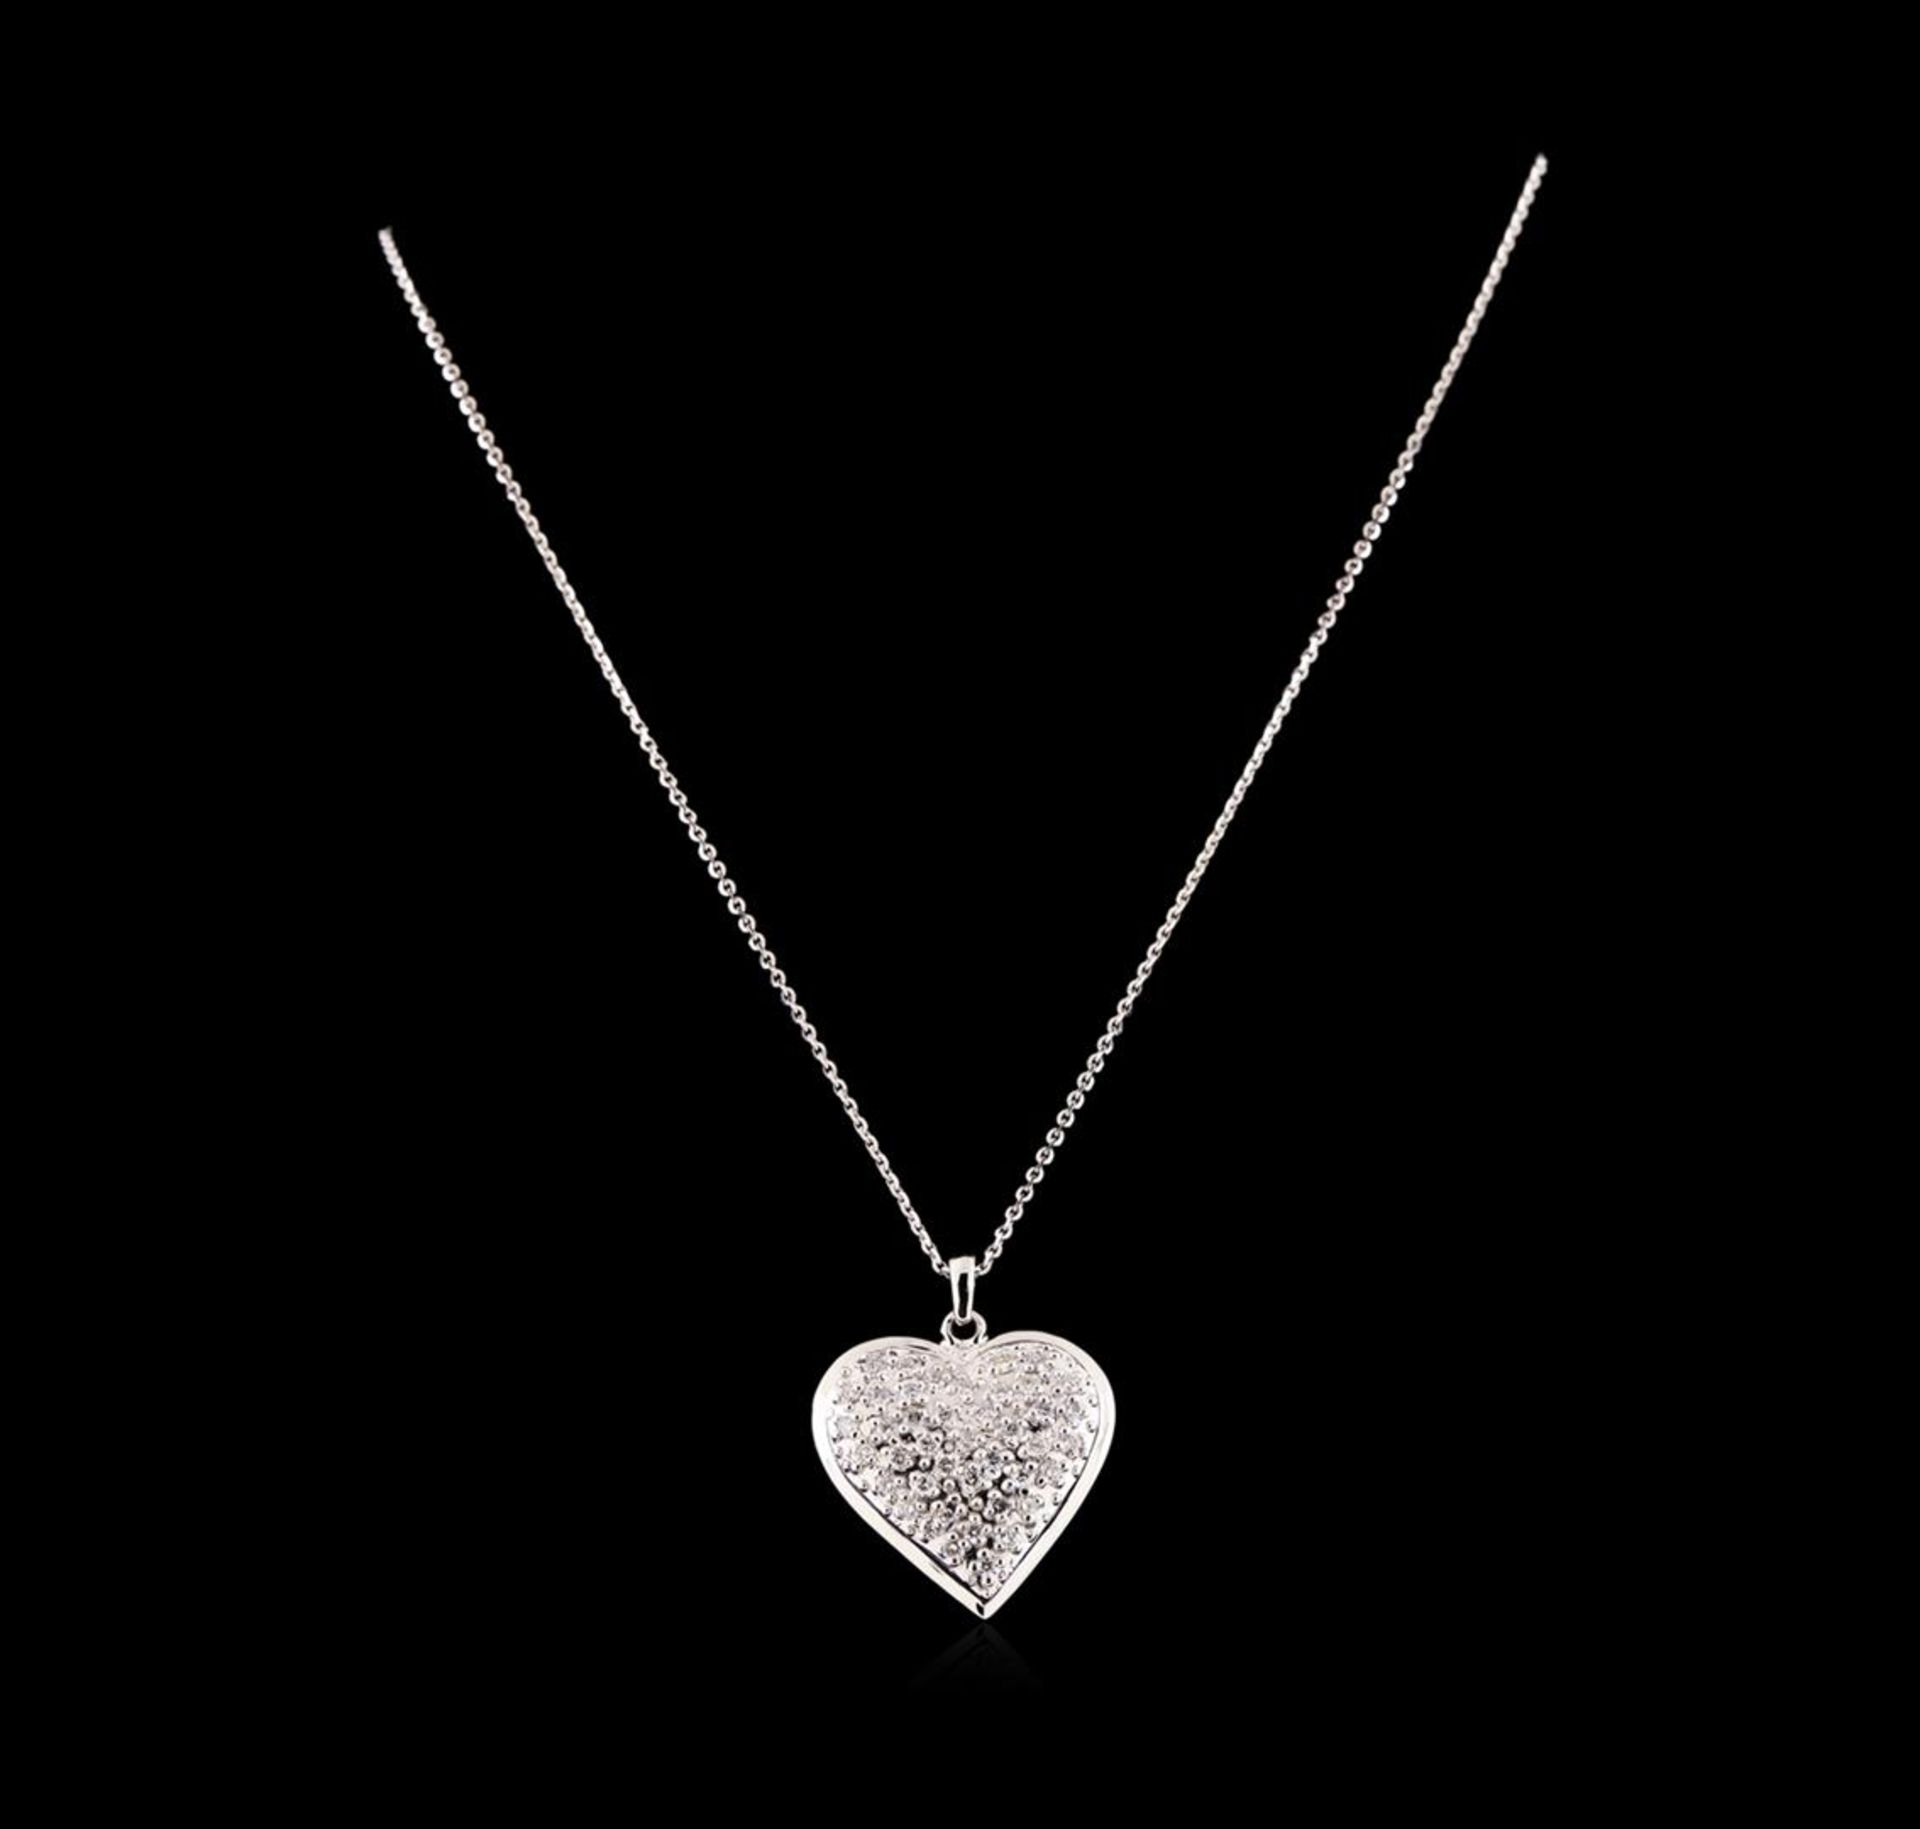 14KT White Gold 1.29 ctw Diamond Heart Pendant With Chain - Image 2 of 3